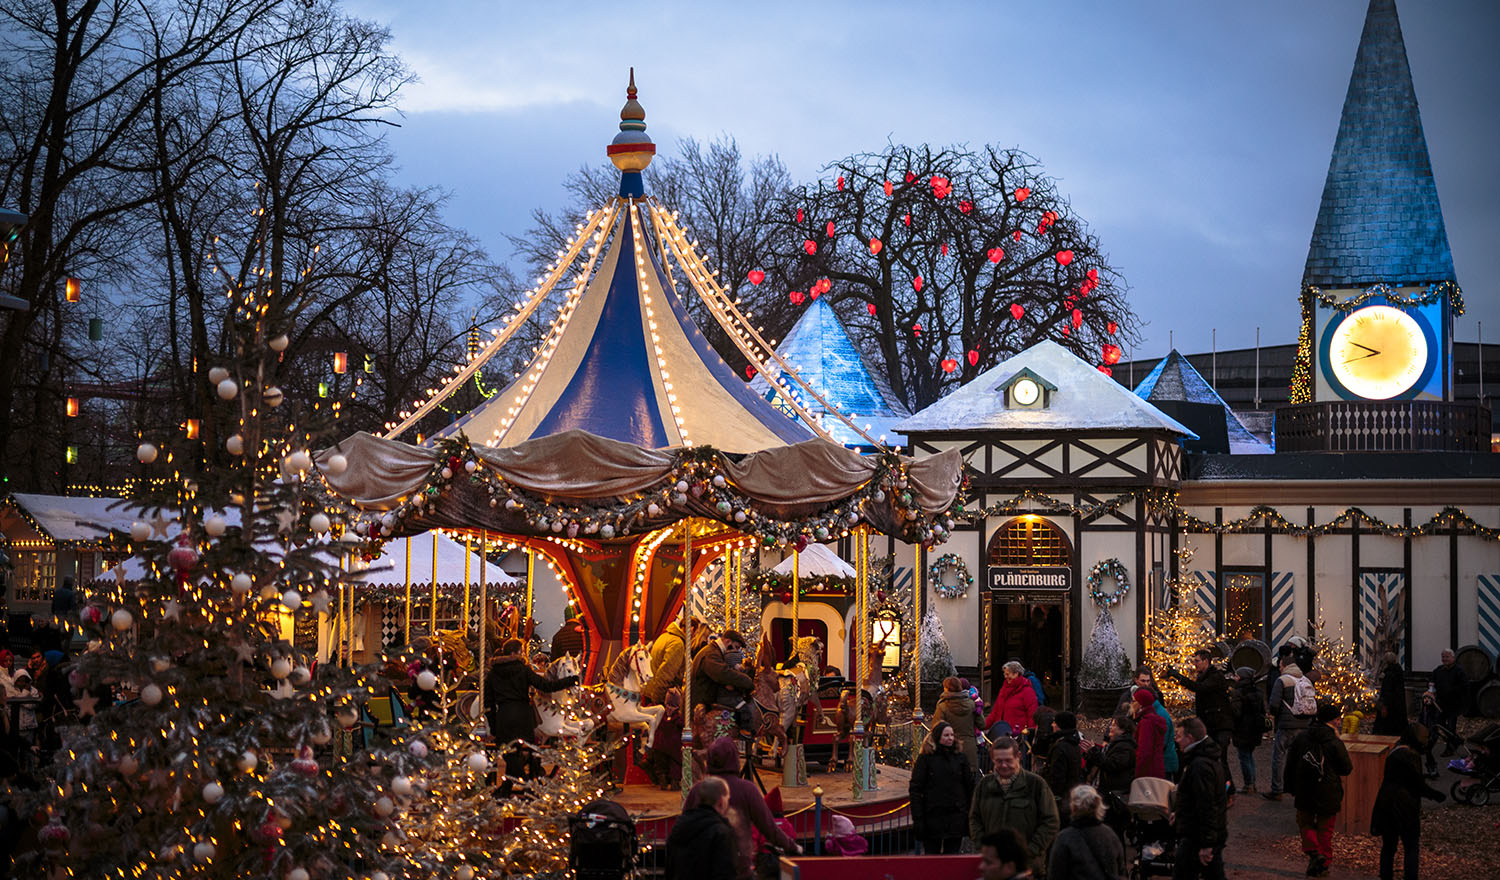 Tivoli is the 170-year-old amusement gardens in central Copenhagen.